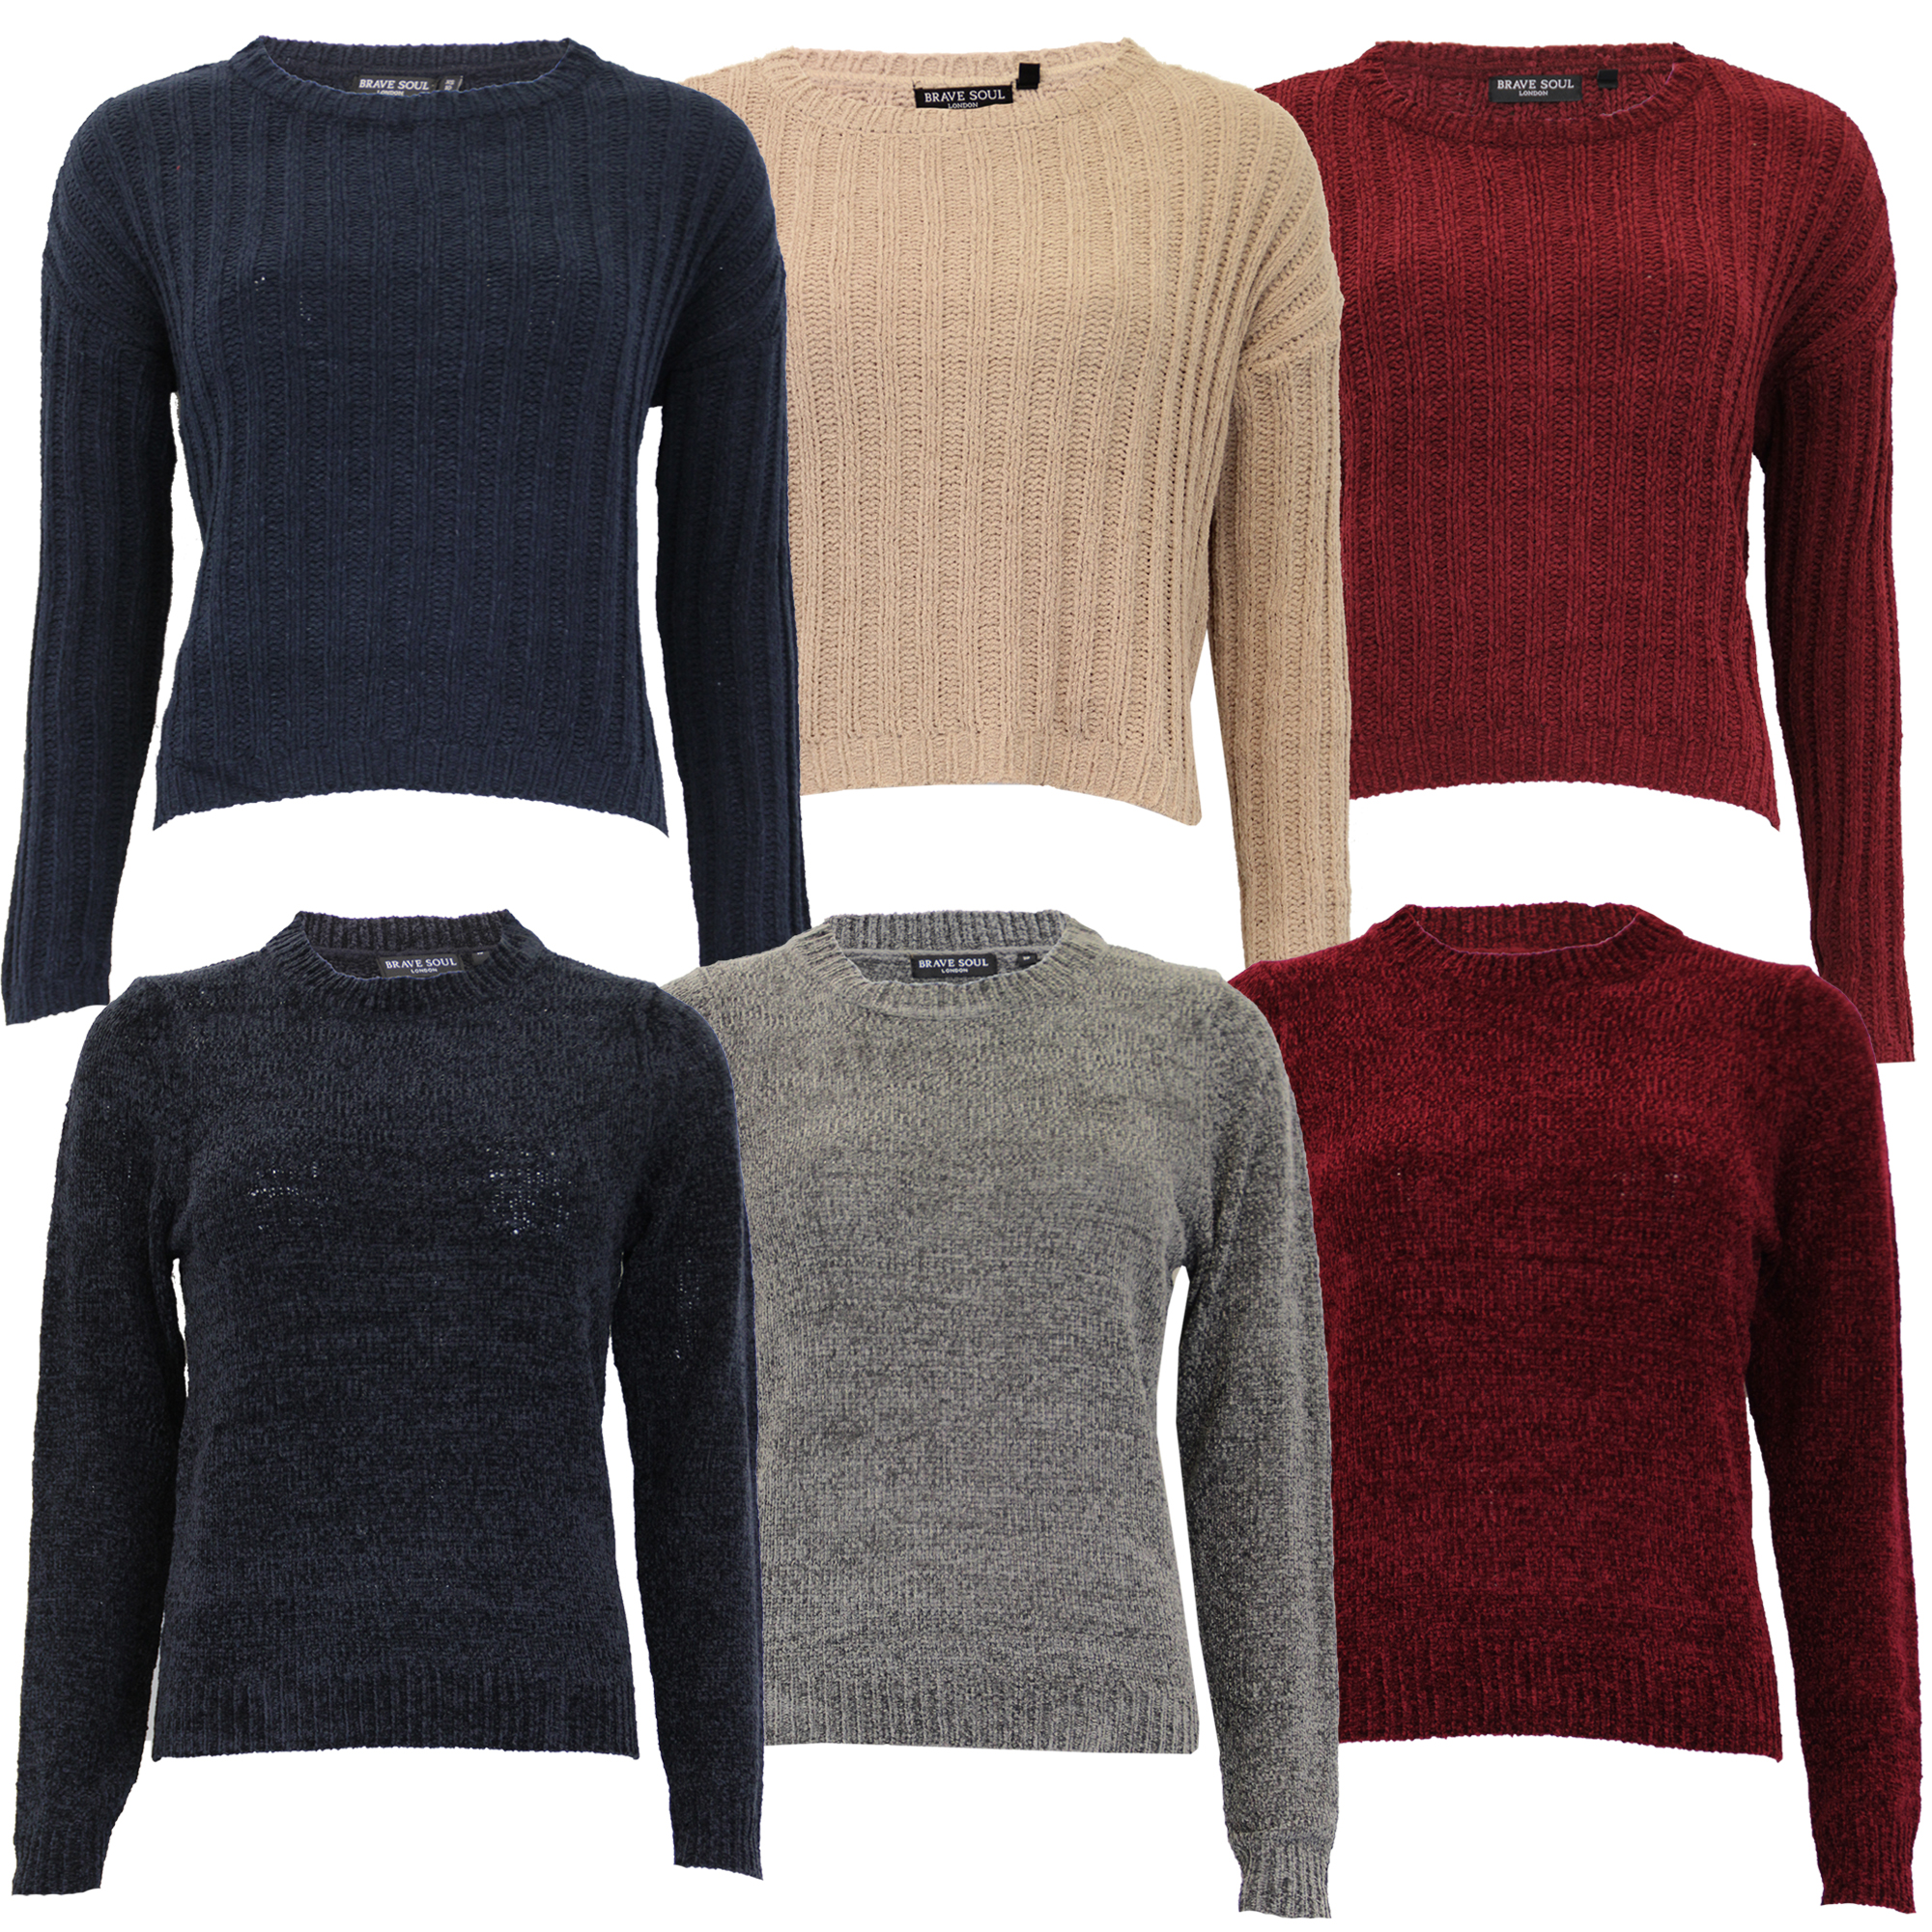 04de37c86 Ladies Chenille Jumpers Brave Soul Womens Knitted Sweater Pullover ...